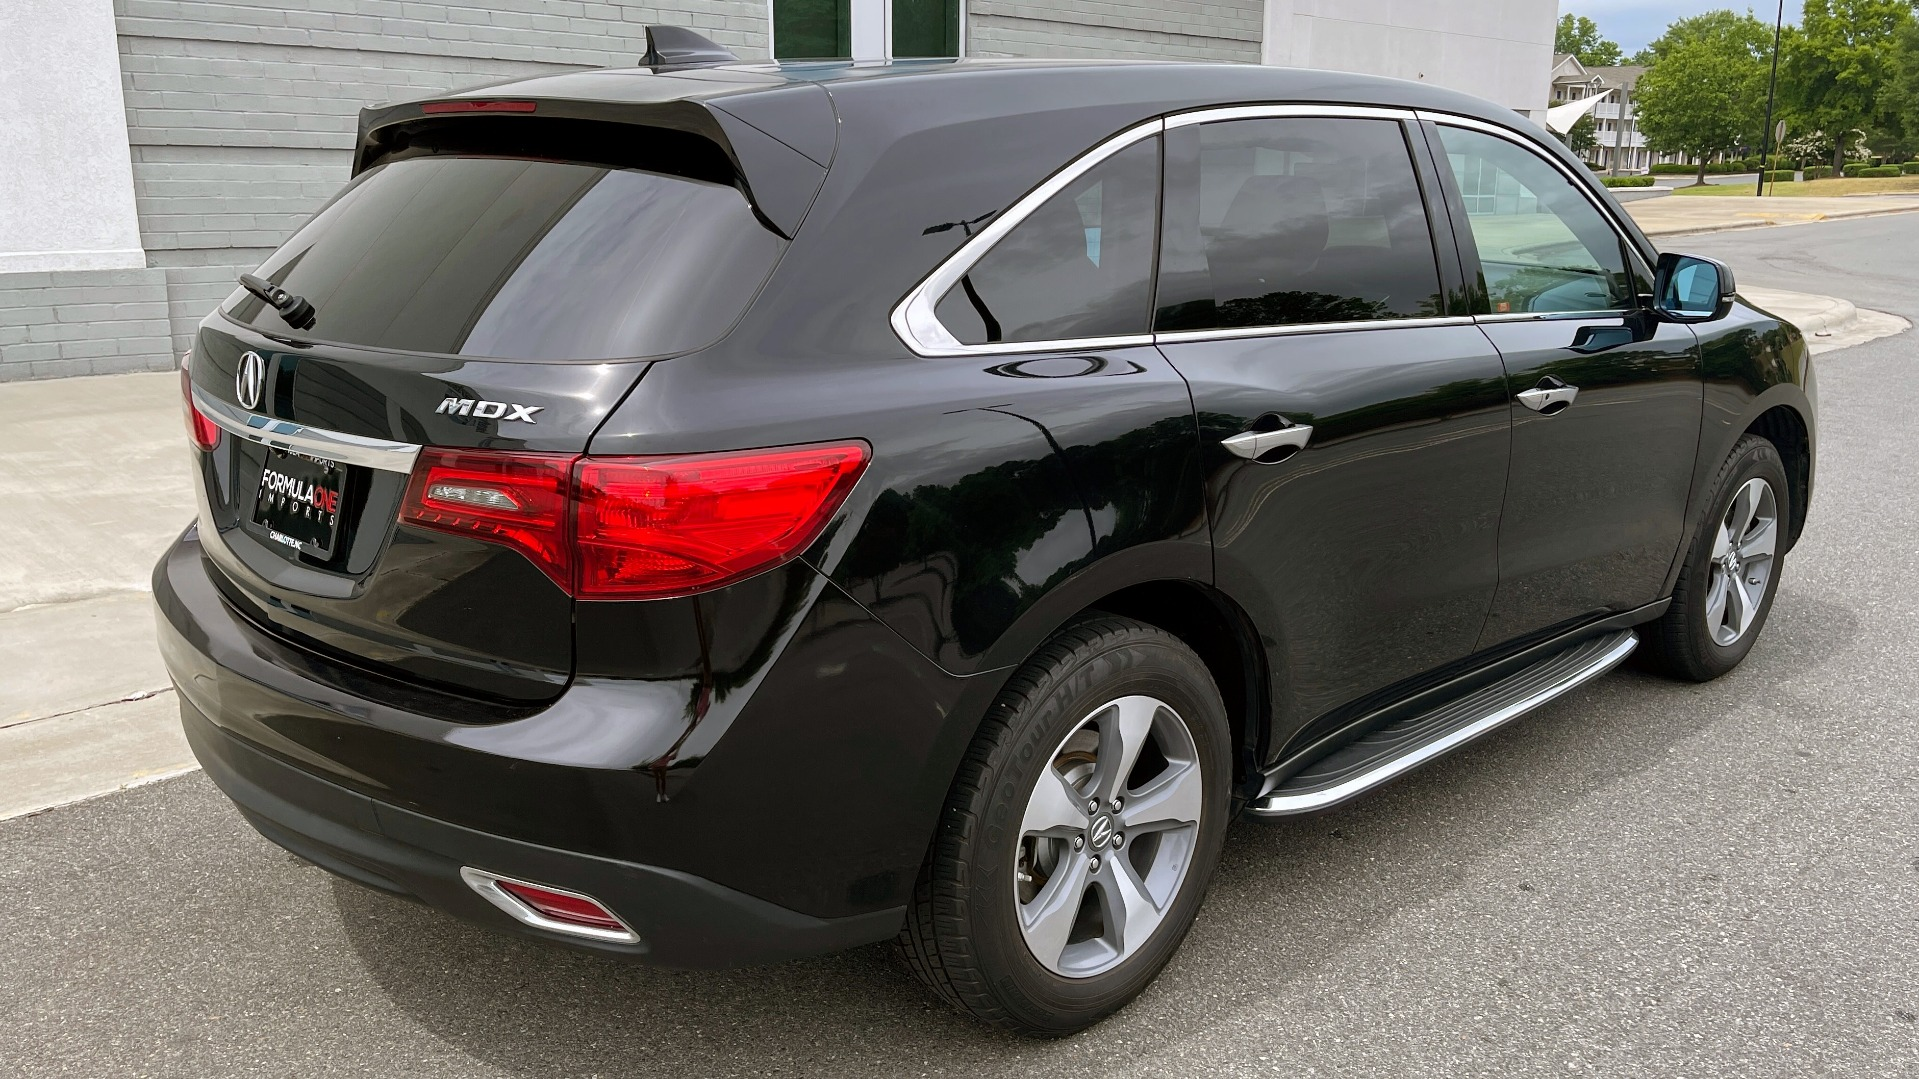 Used 2016 Acura MDX 3.5L V6 / AUTO / LEATHER / NAV / SUNROOF / 3-ROW / REARVIEW for sale $21,900 at Formula Imports in Charlotte NC 28227 2